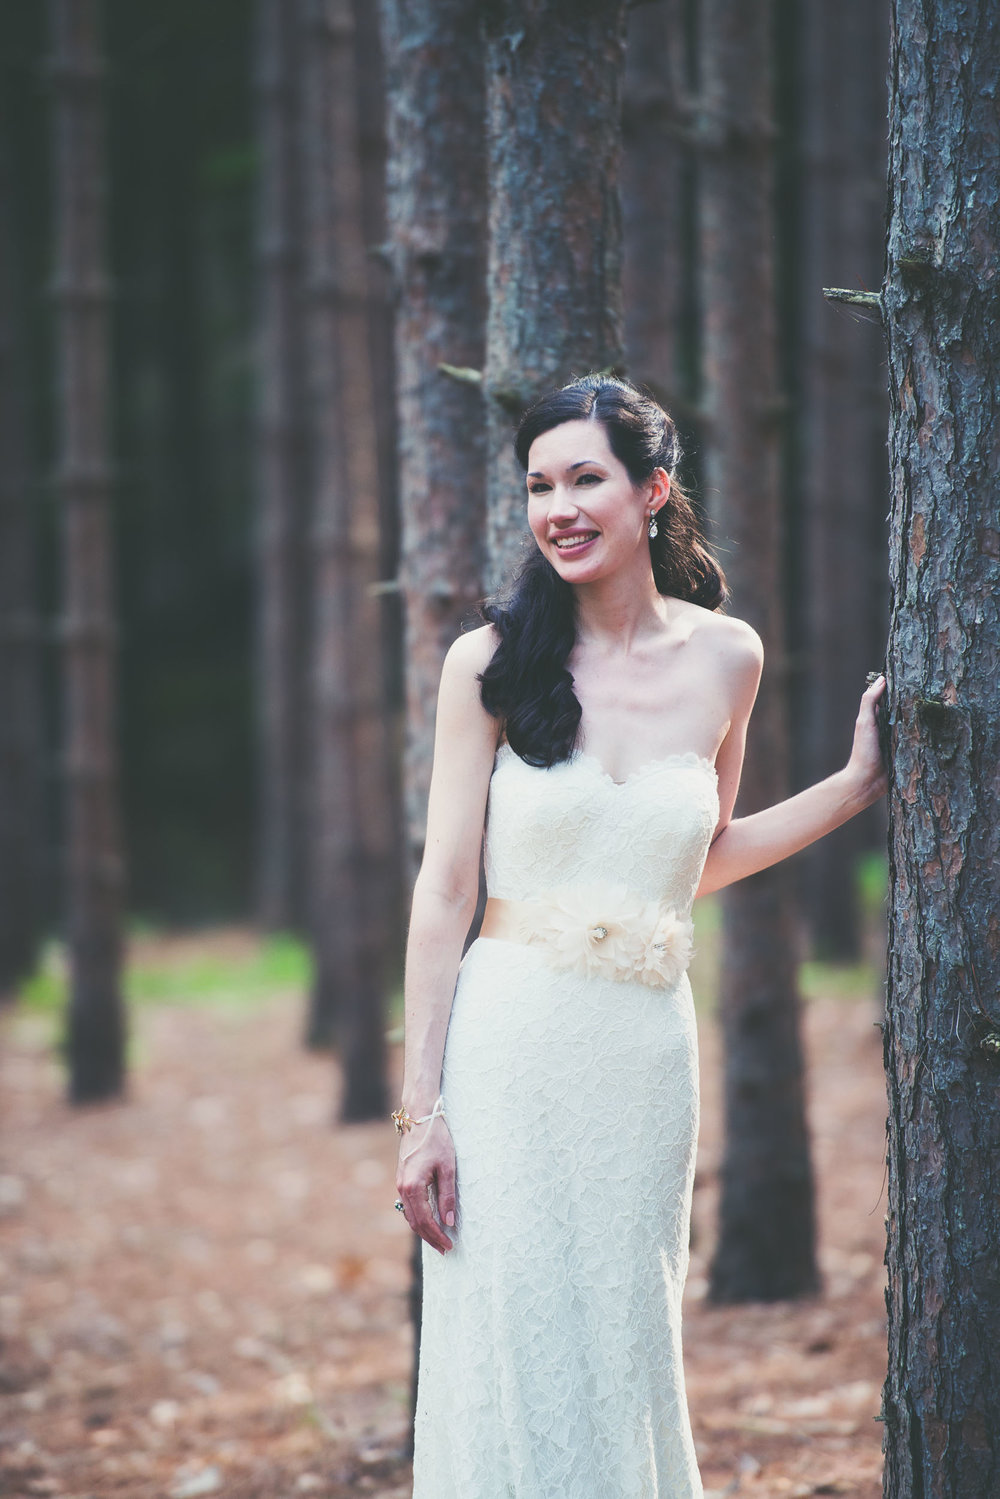 Bride against tree - Weddings - Photo credit Nicola Bailey.jpg